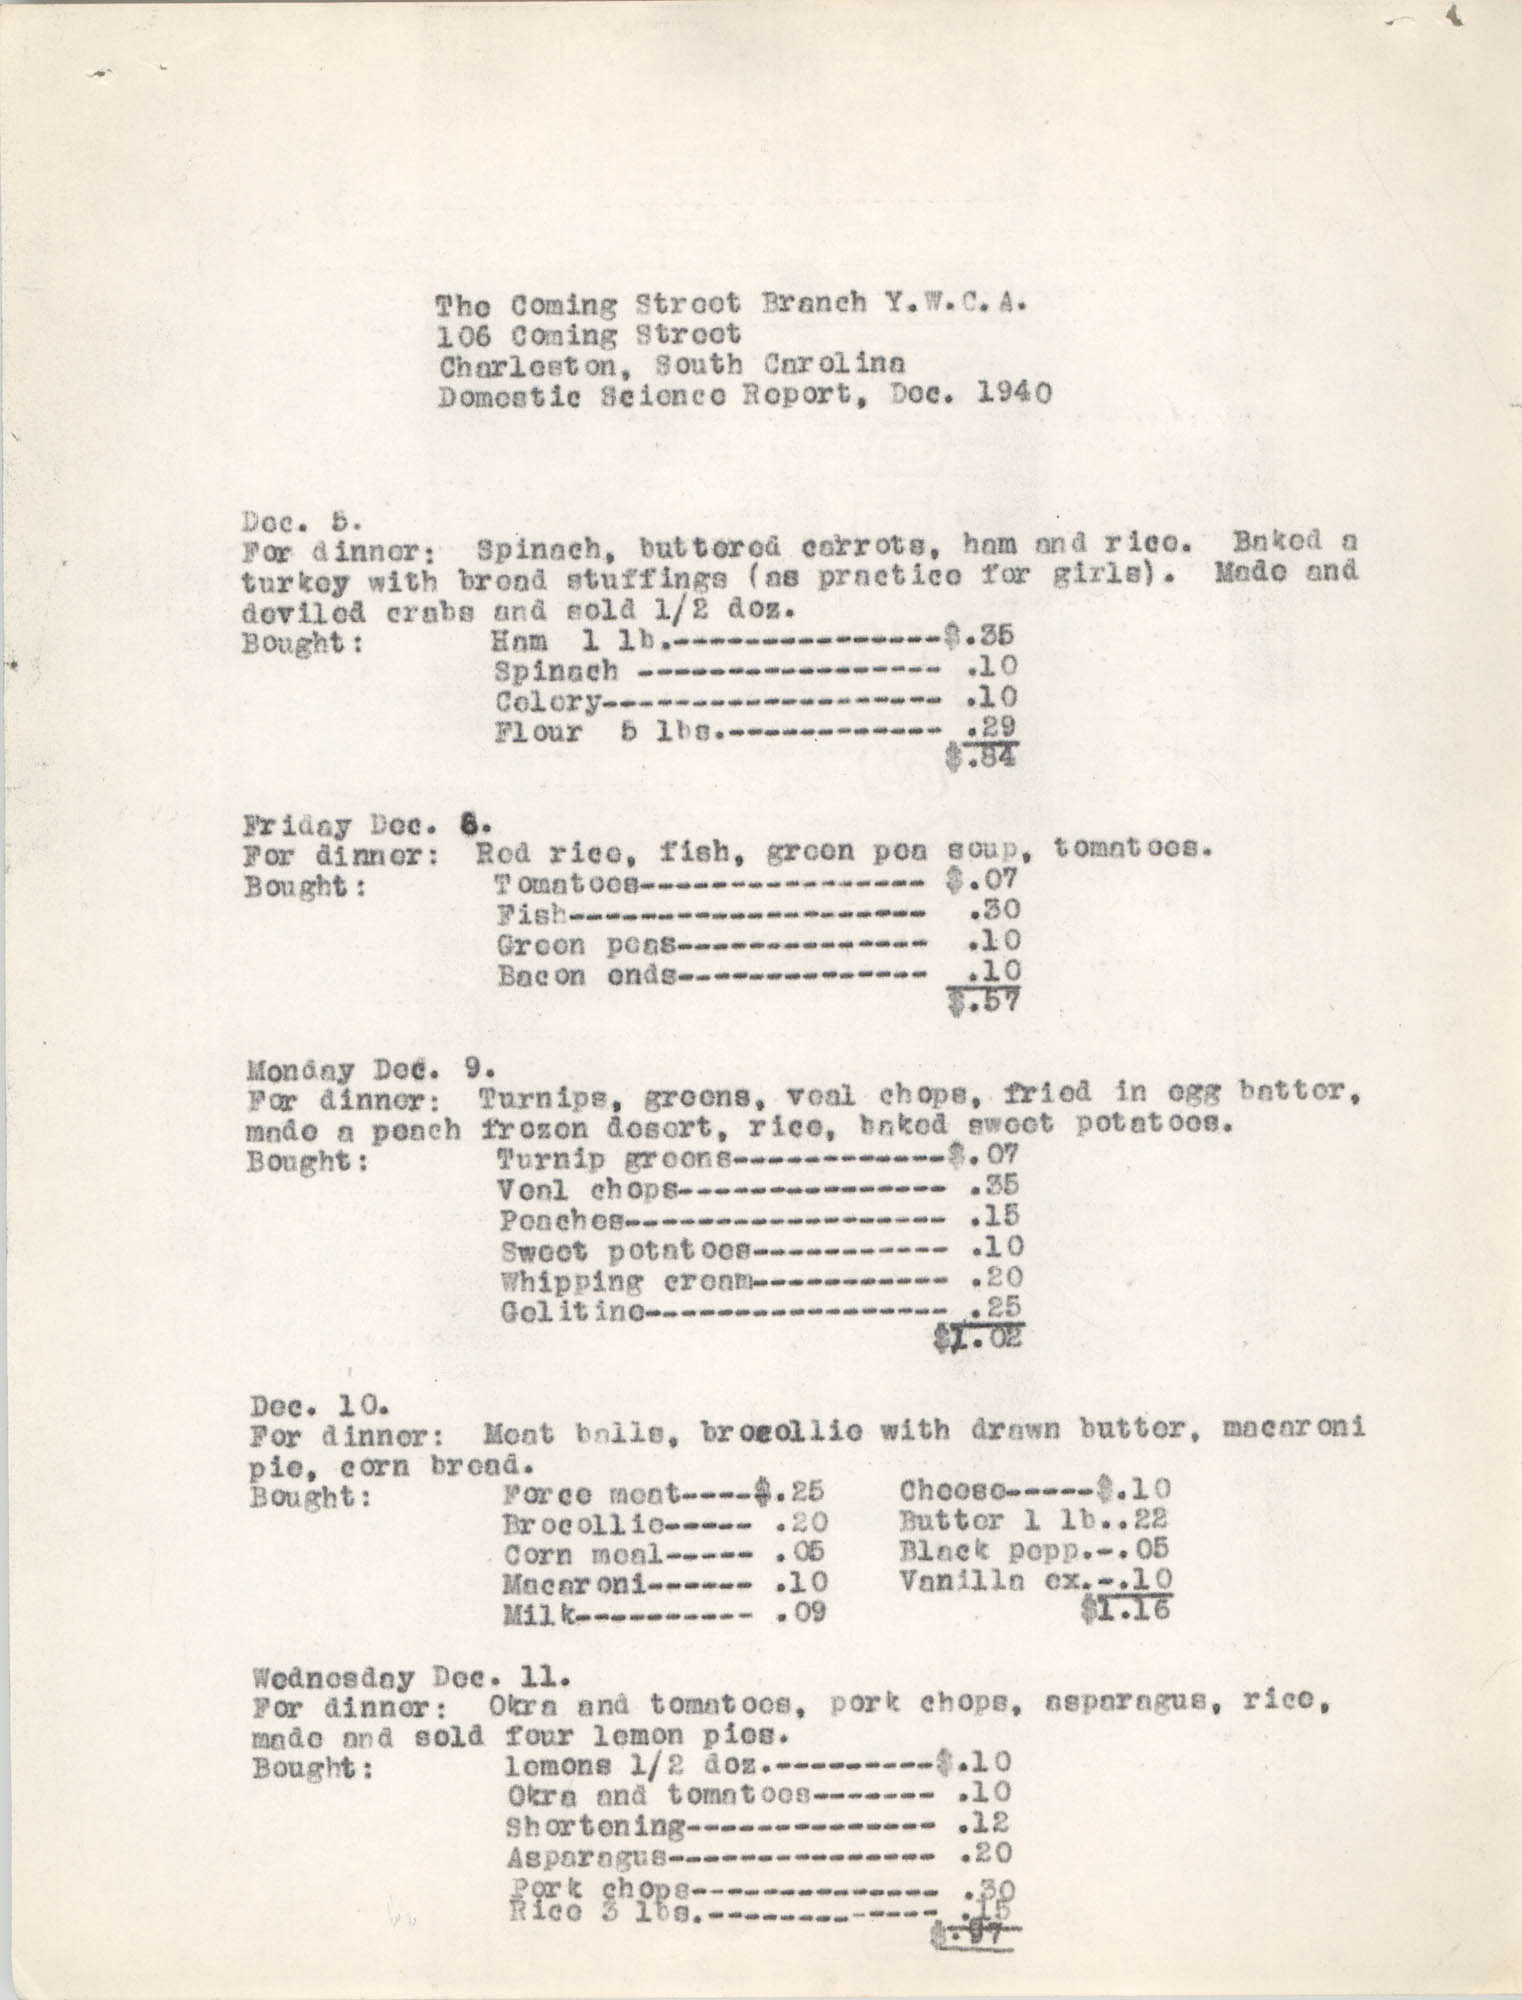 Monthly Report for the Coming Street Y.W.C.A., Domestic Science School, September 1940, Page 2